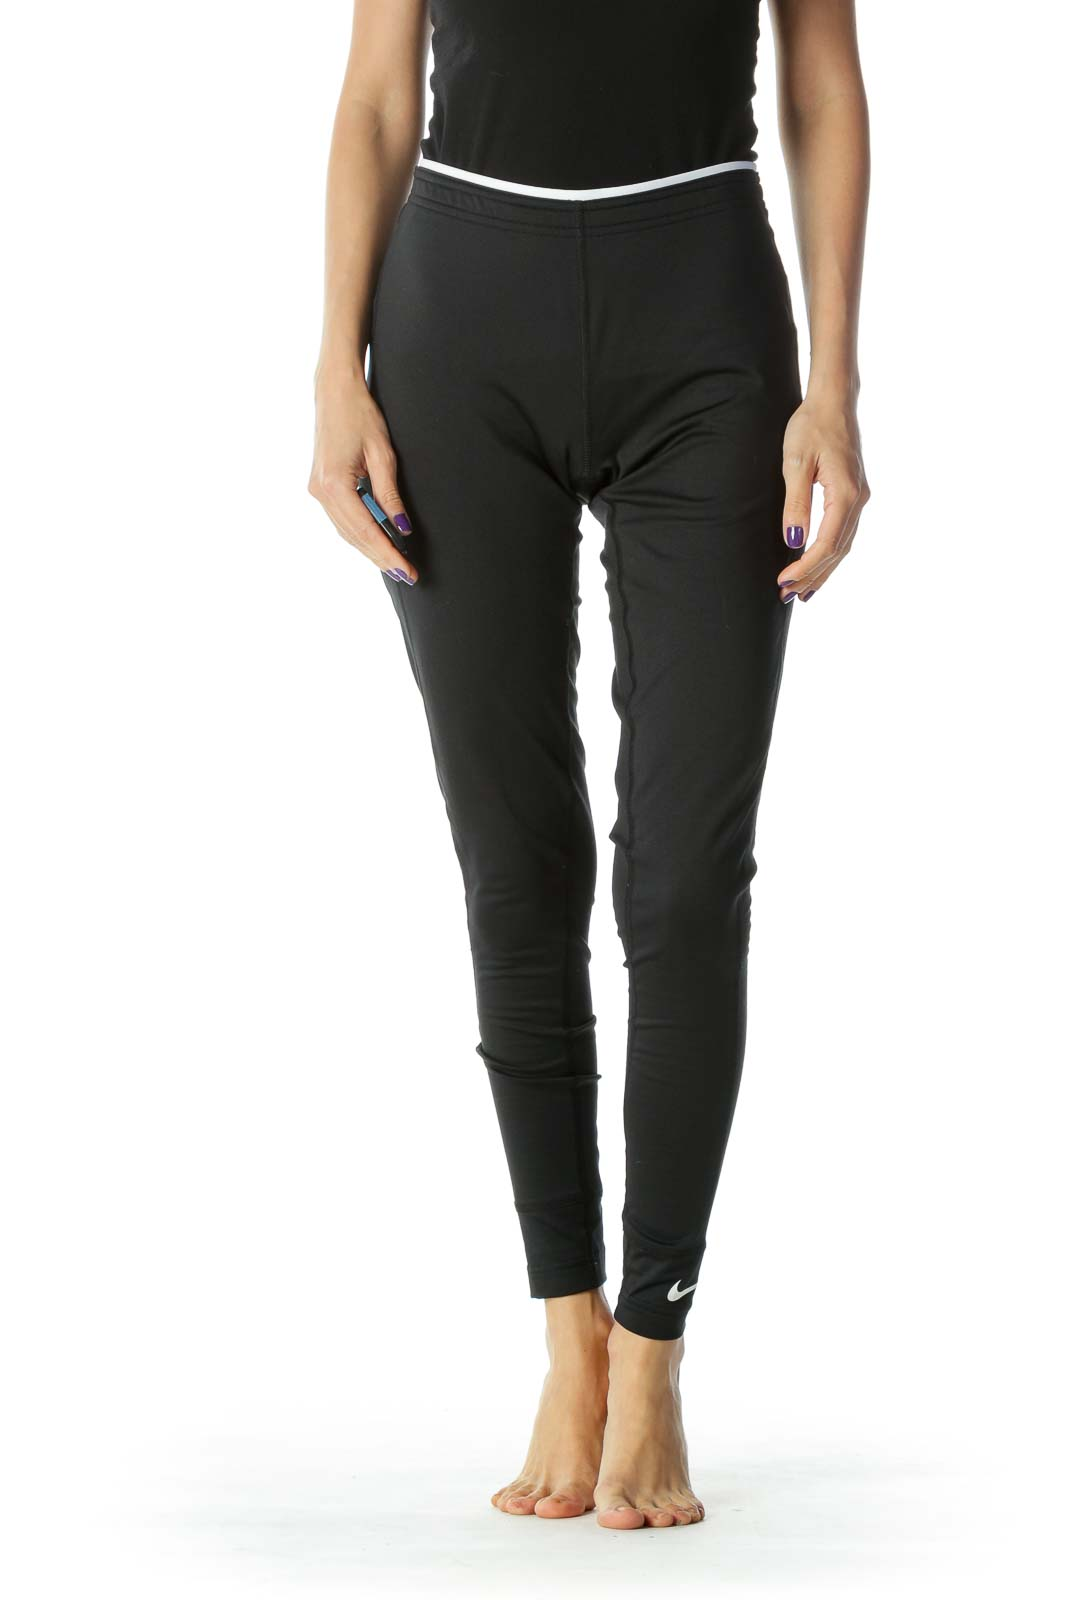 Black and White Low Rise Legging